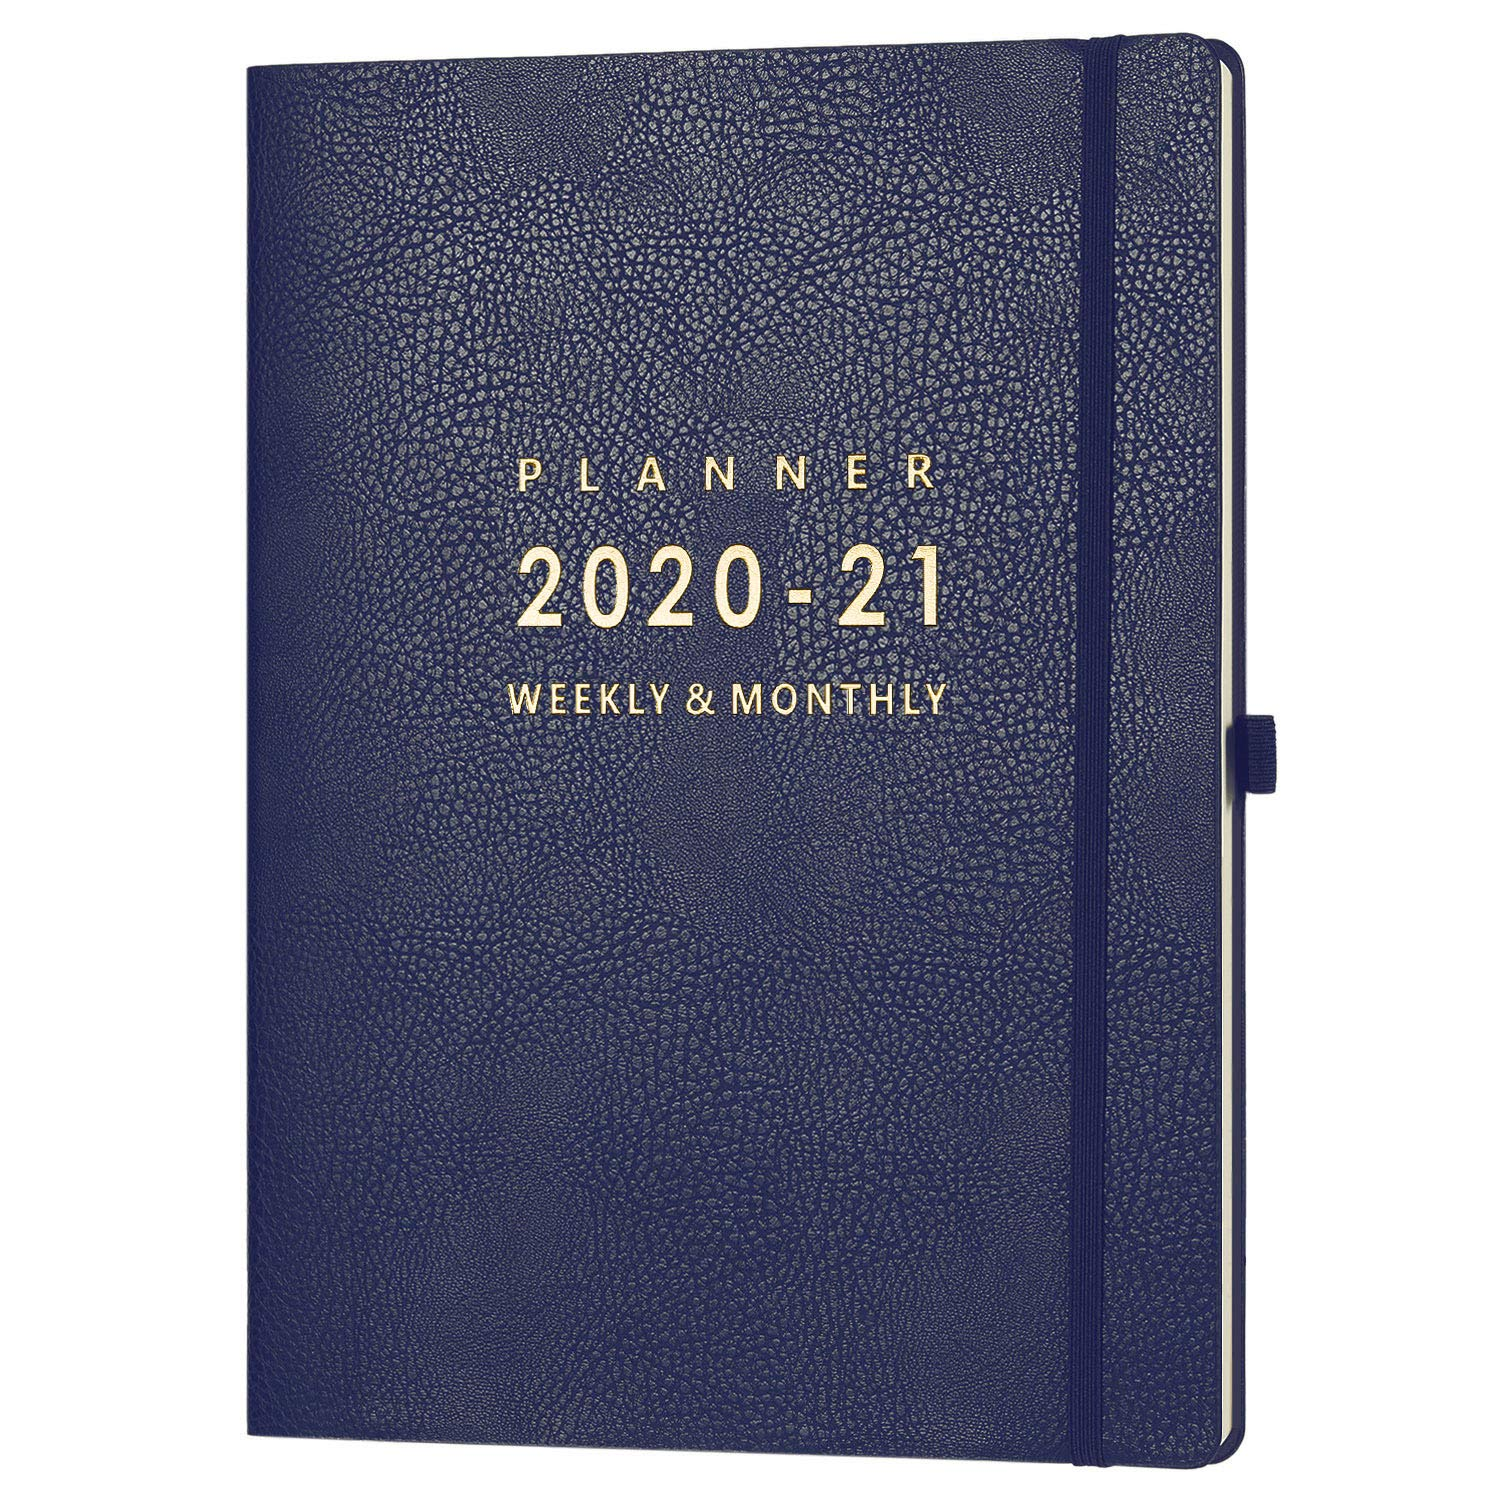 """July 2020 - June 2021 Planner with Pen Holder - 8.5"""" x 11"""" Weekly & Monthly Planner with Calendar Stickers, July 2020 - June 2021, Inner Pocket with 24 Notes Pages, A4 Premium Thicker Paper"""